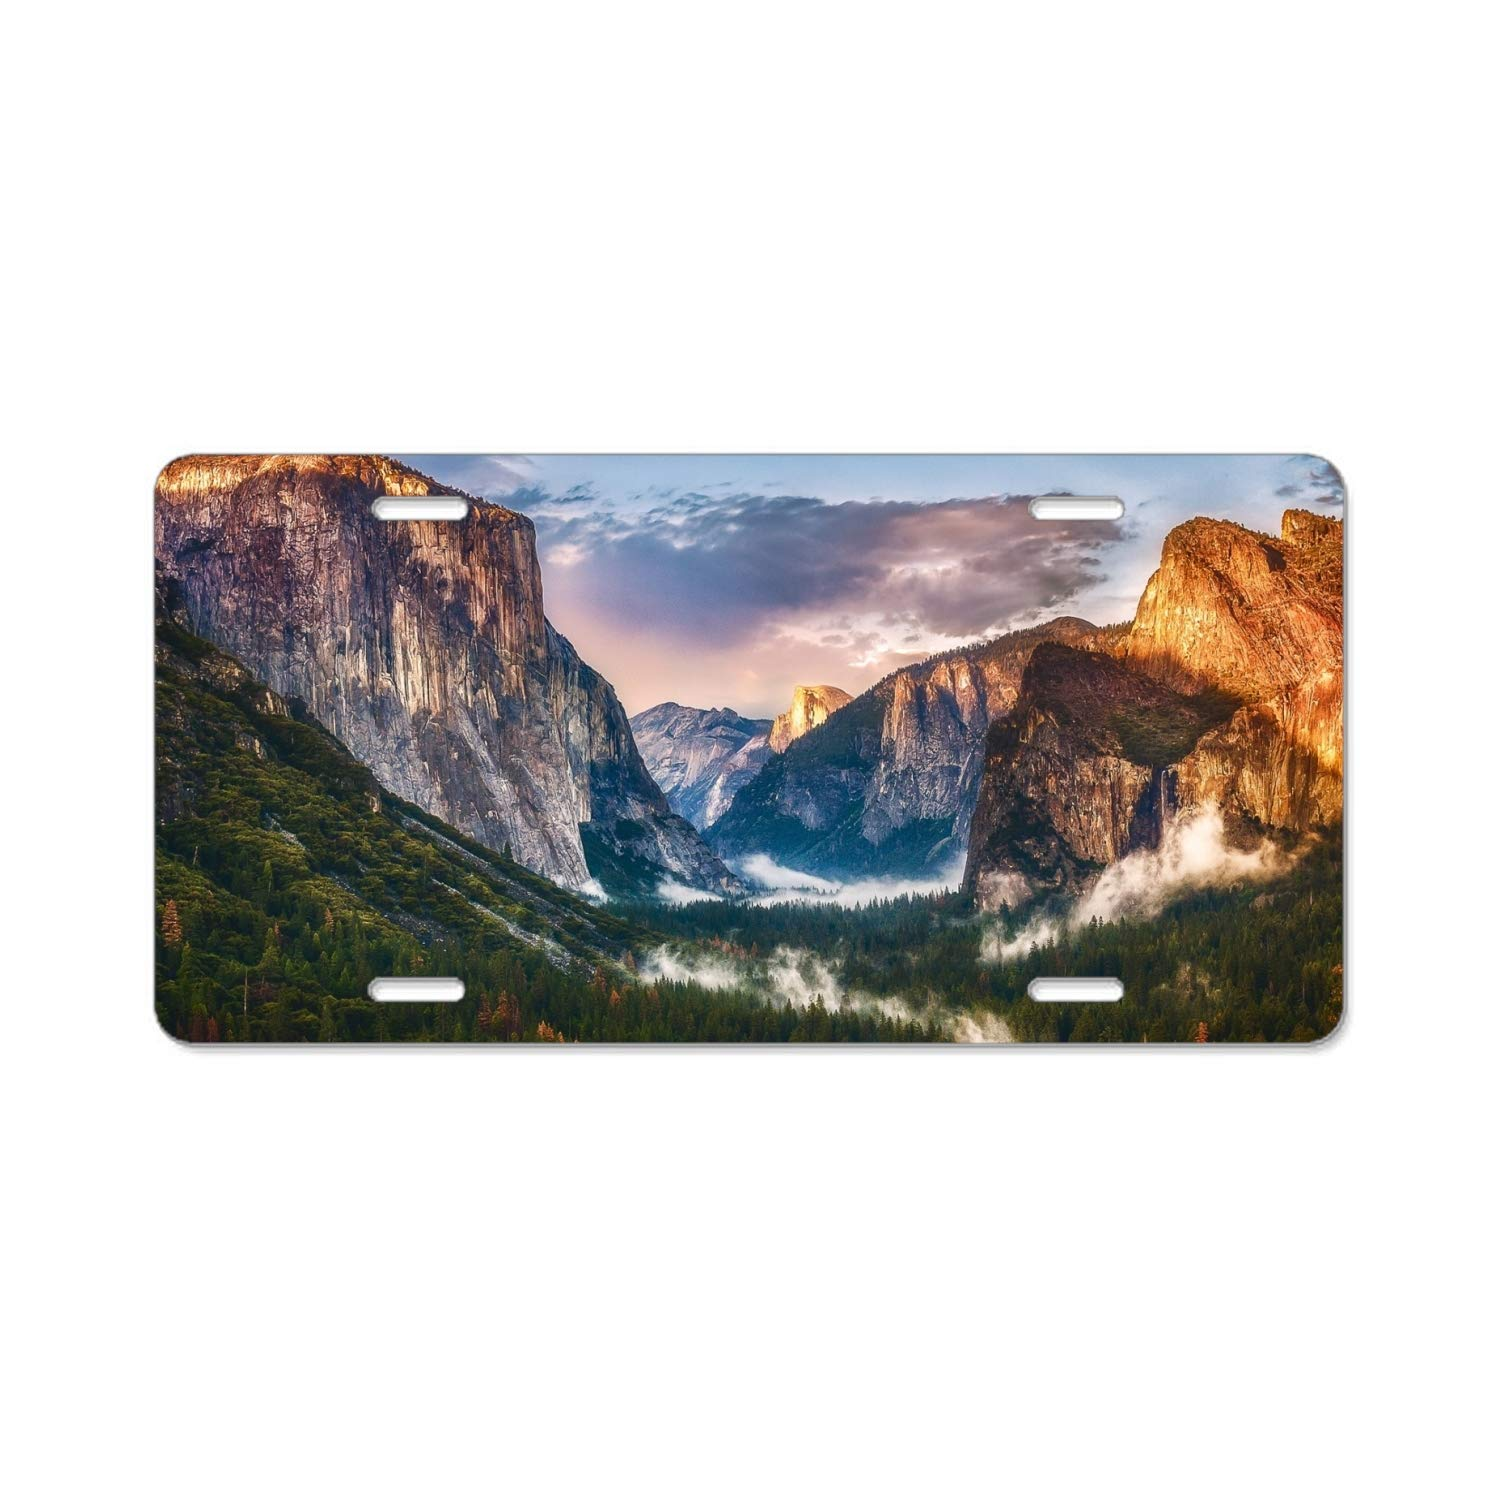 License Plate Covers & Frames KSLIDS Landscape Cliff Mountain Valley Forest Car Vehicle License Plate Metal Tin Sign Plaque License Plate Covers & Frames